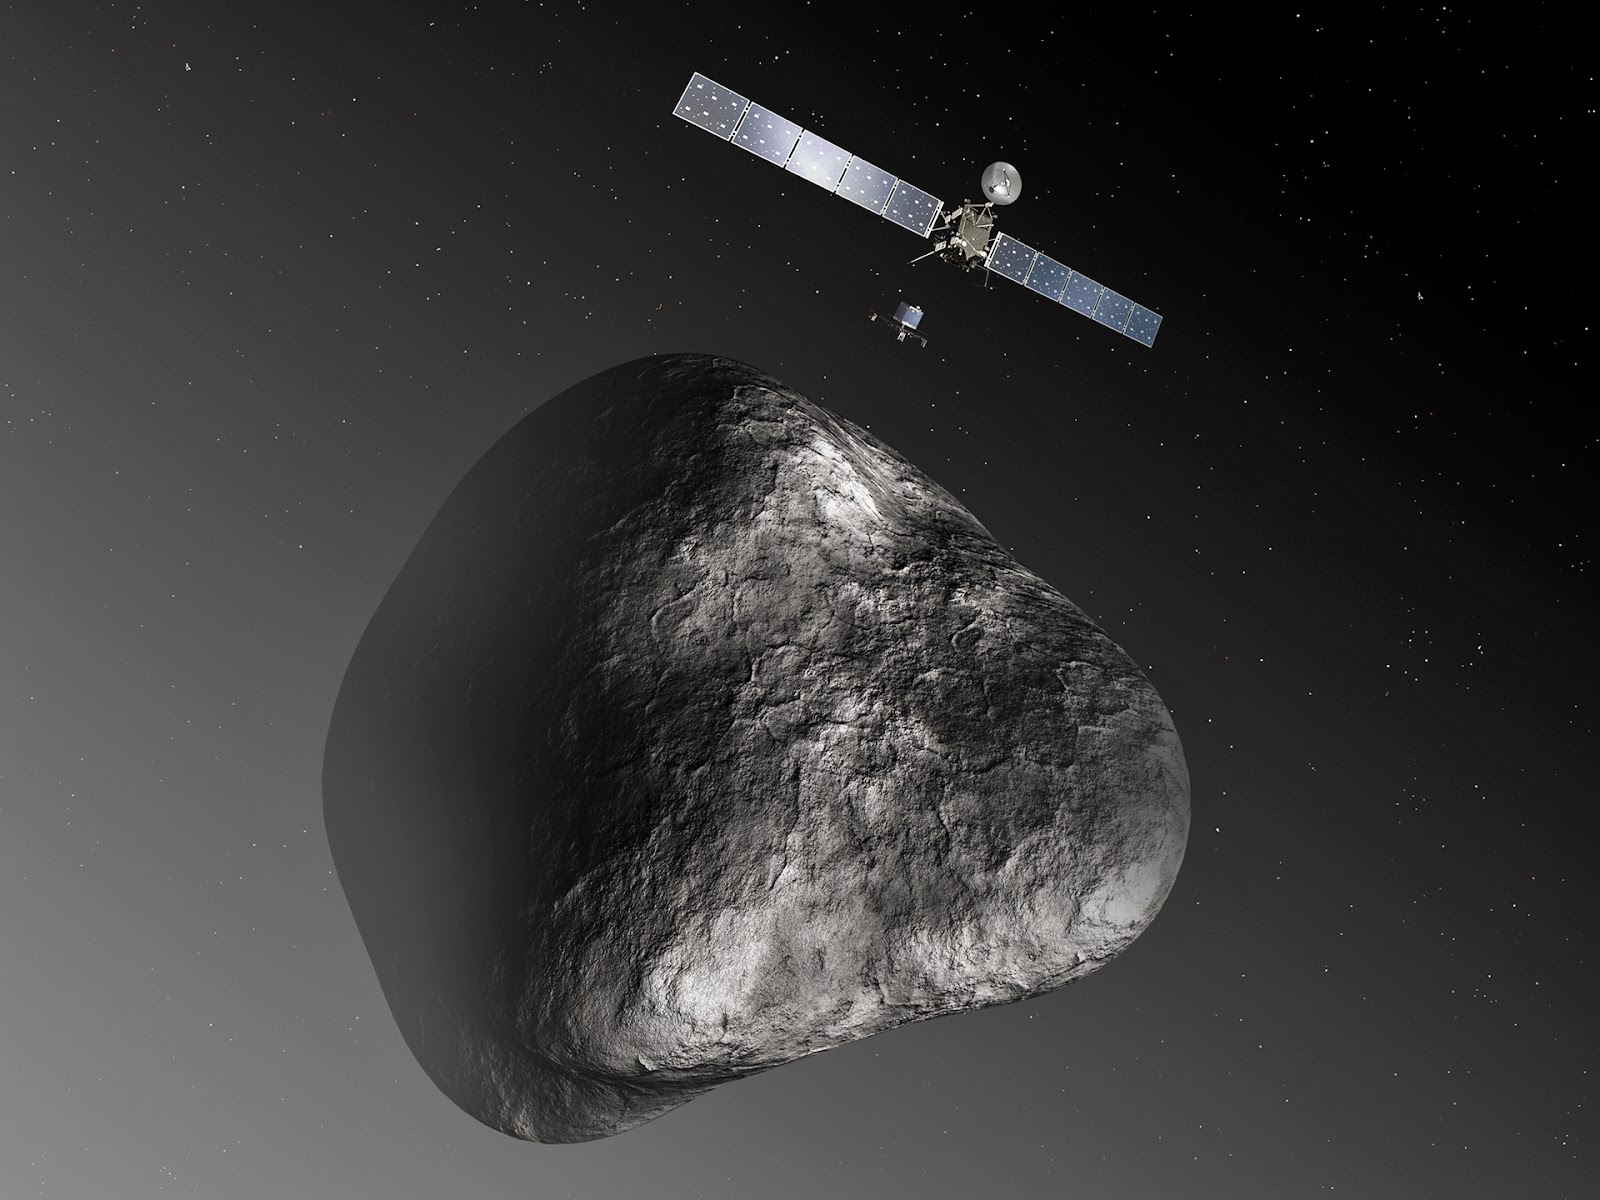 Stuff about Space: Esa's Comet Hunting Rosetta Probe Wakes Up